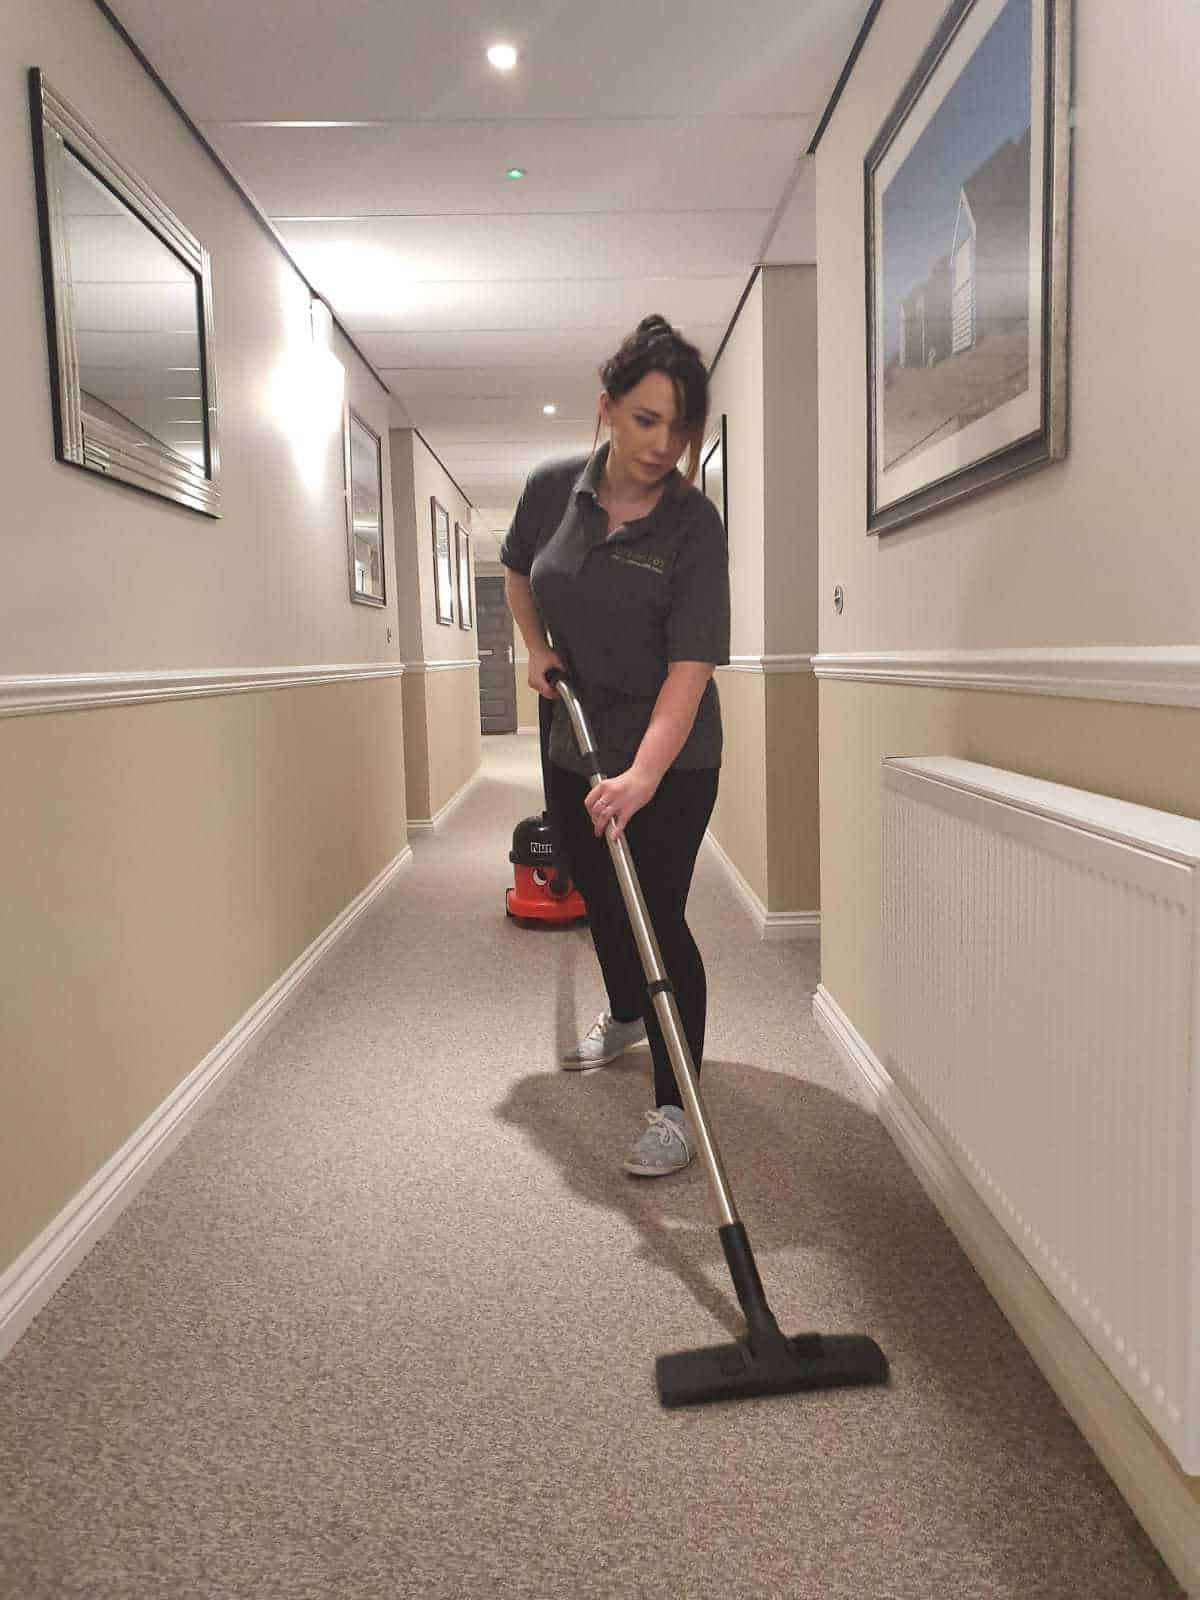 Green Fox Commercial cleaning sectors